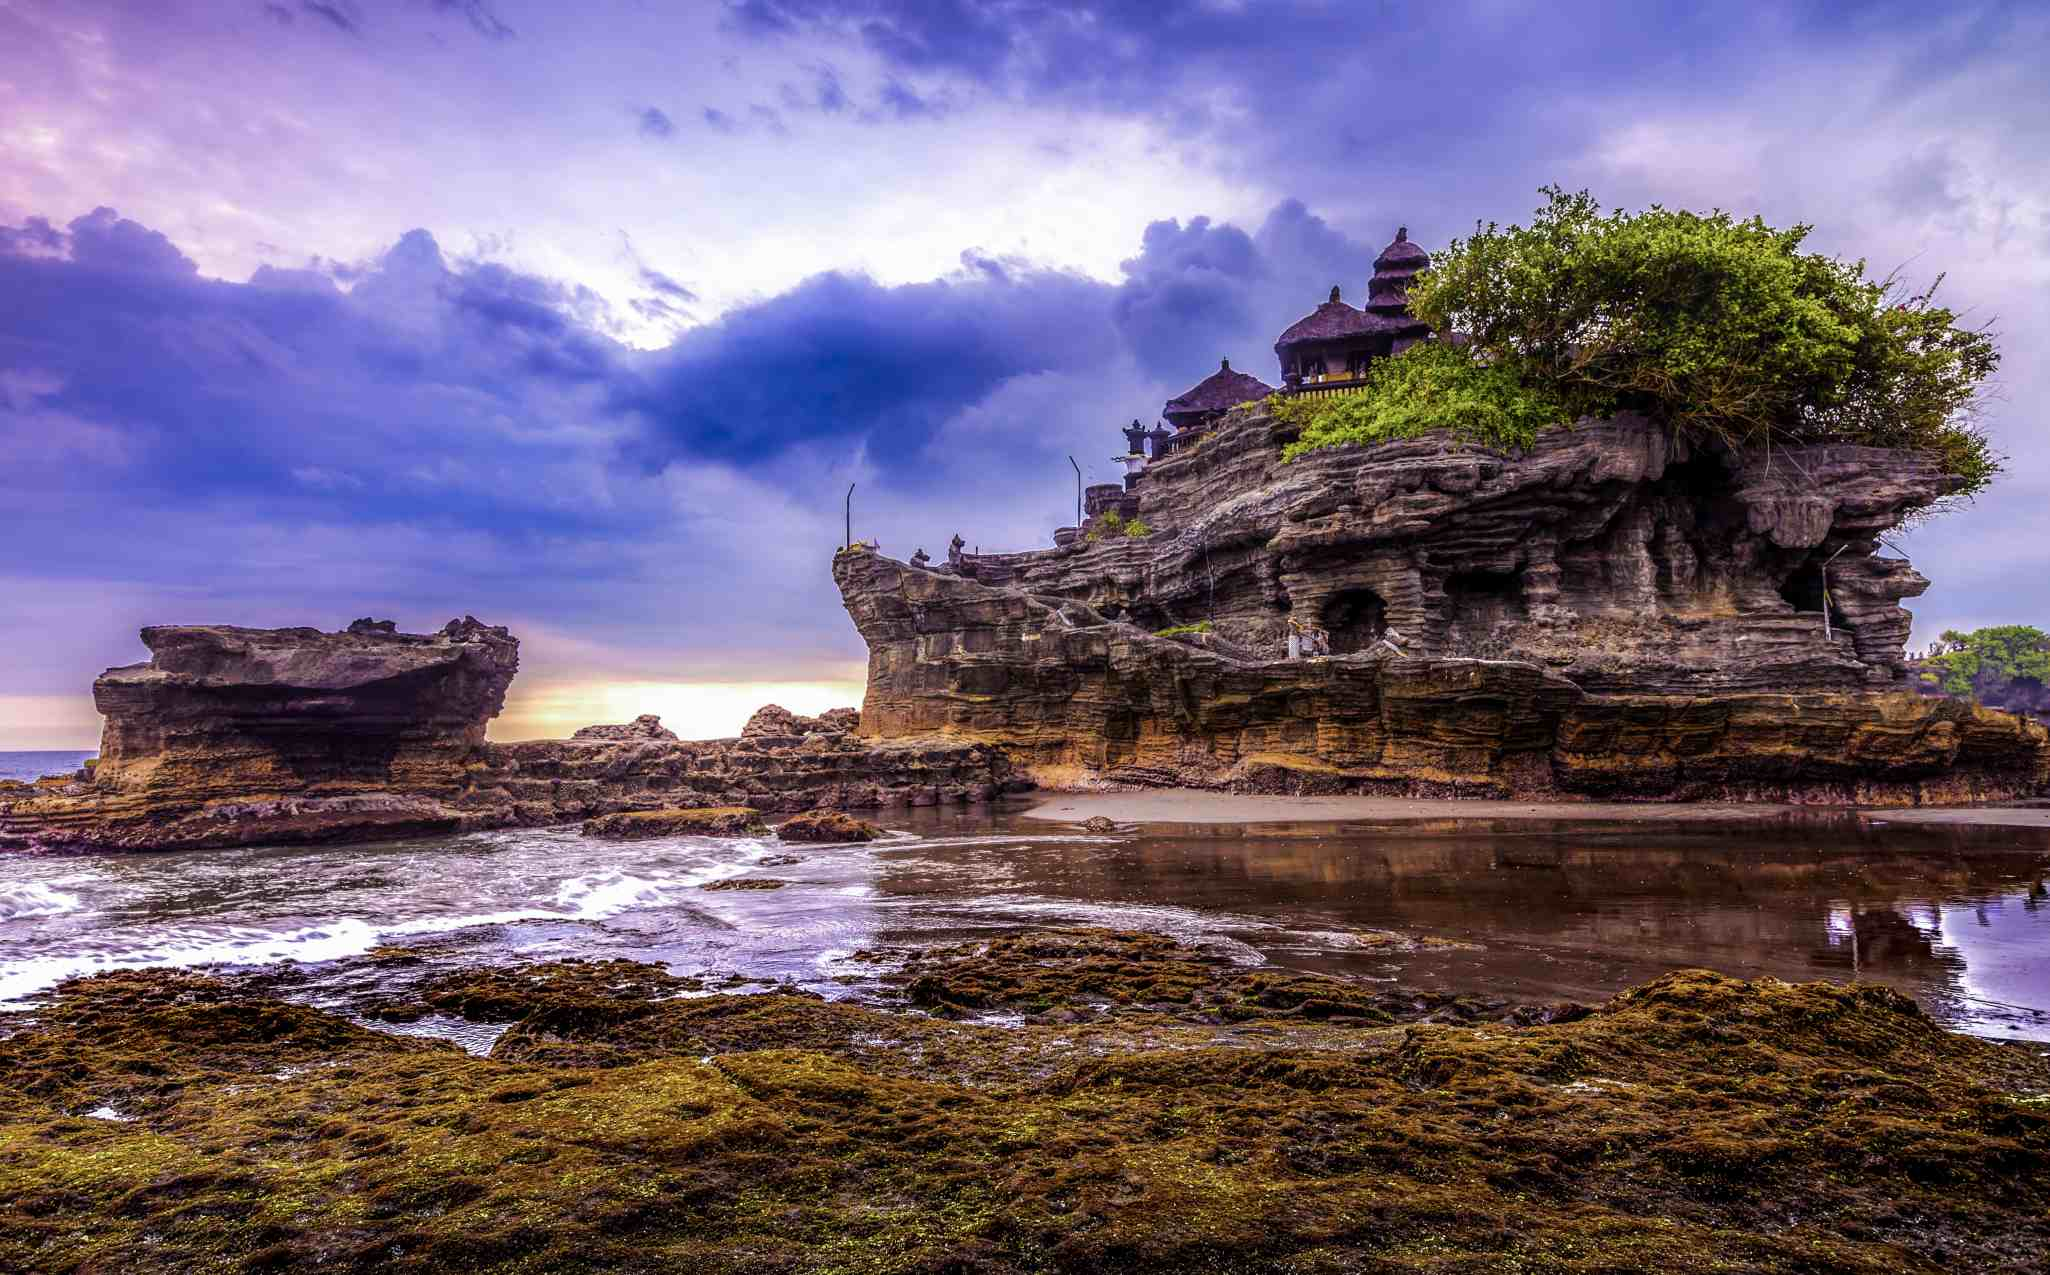 Temple of Tanah Lot